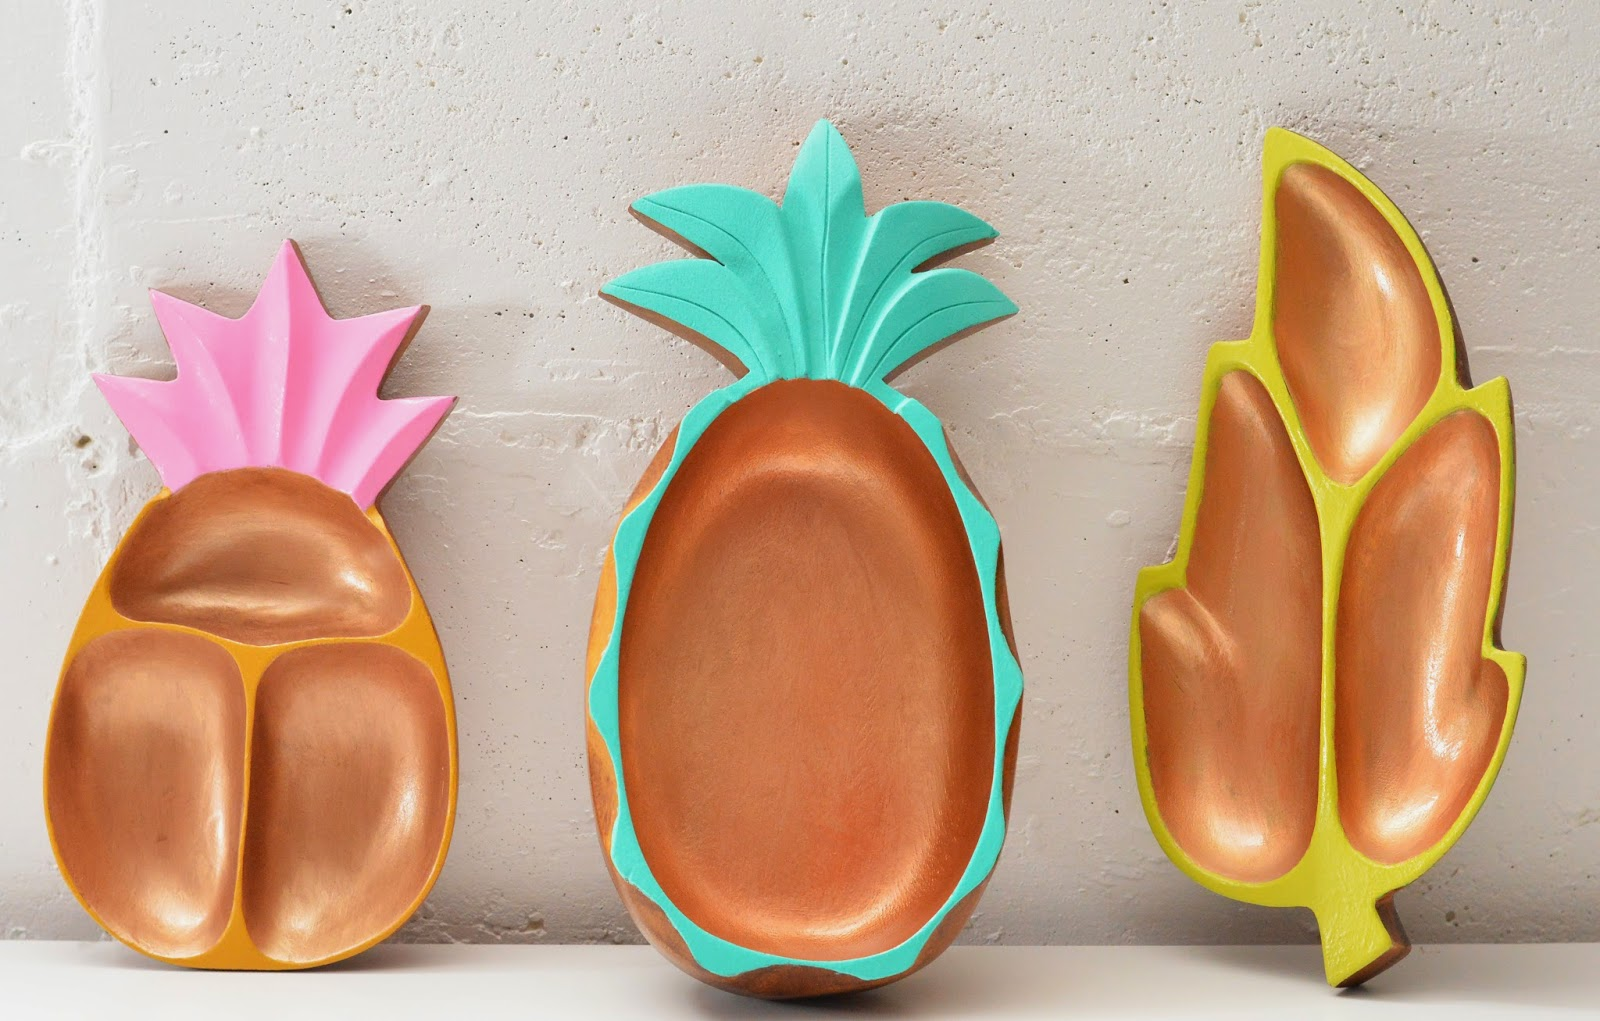 Pineapple Bowl with a mid century style